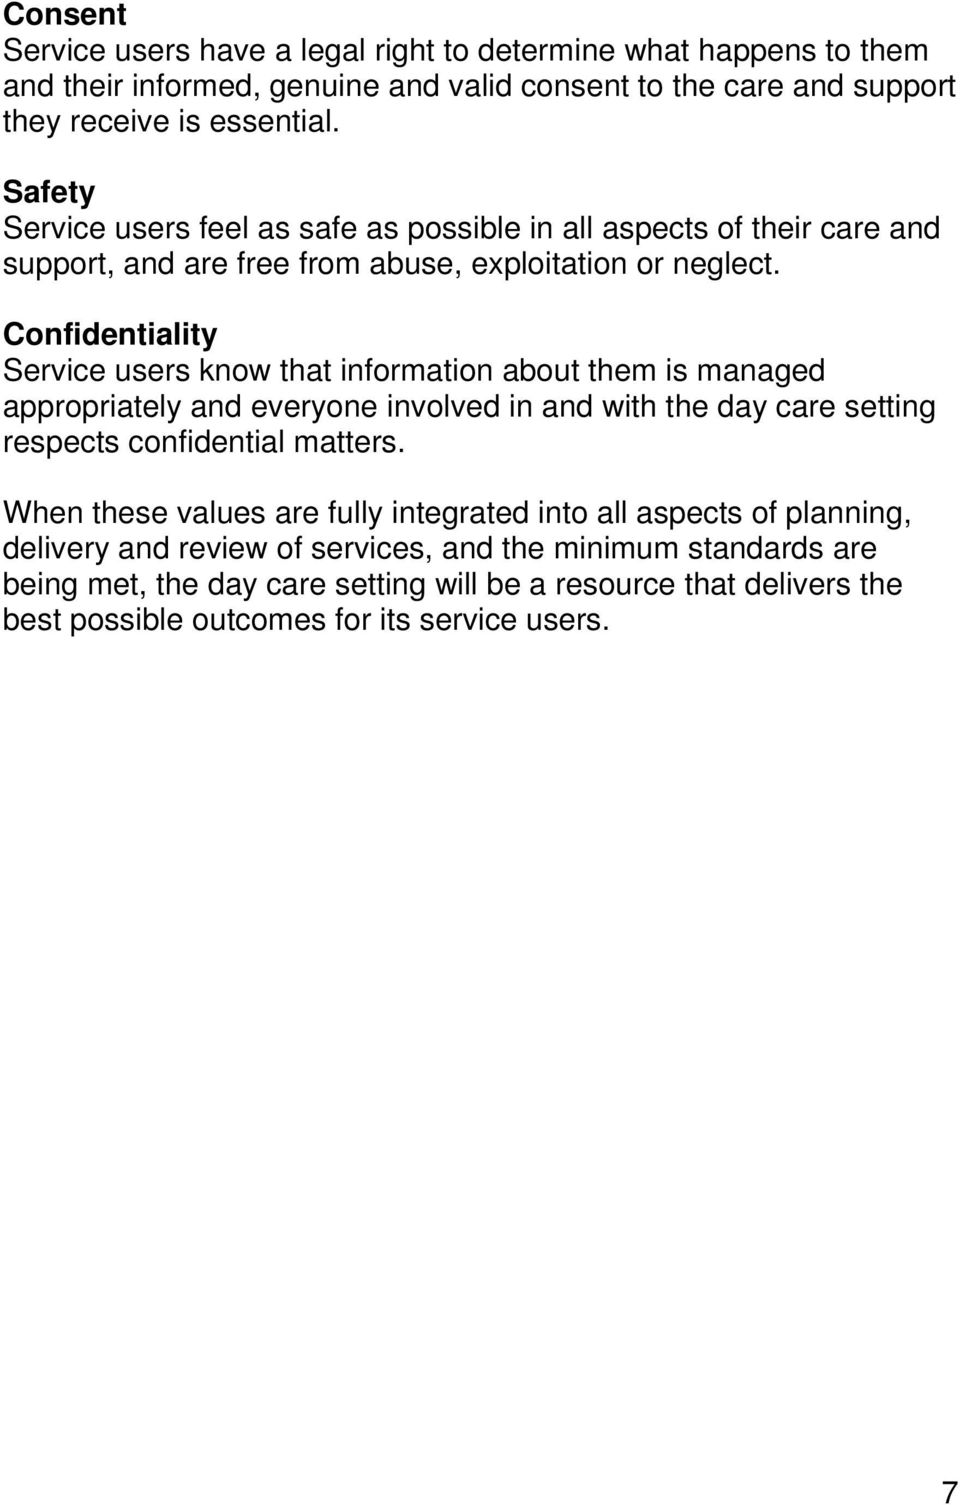 Confidentiality Service users know that information about them is managed appropriately and everyone involved in and with the day care setting respects confidential matters.